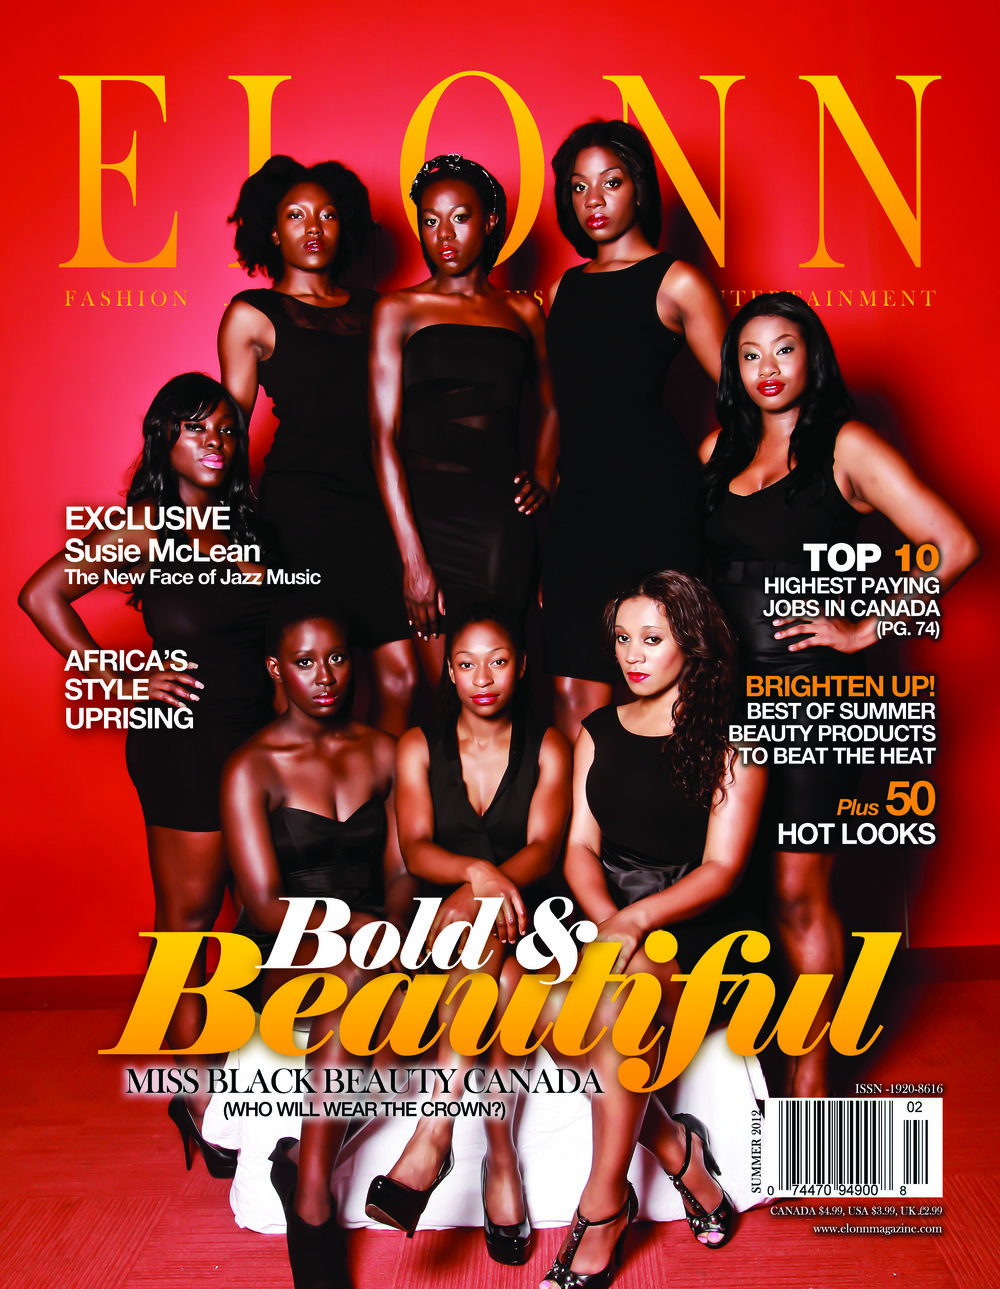 elonn-cover-july-2012 update.jpg